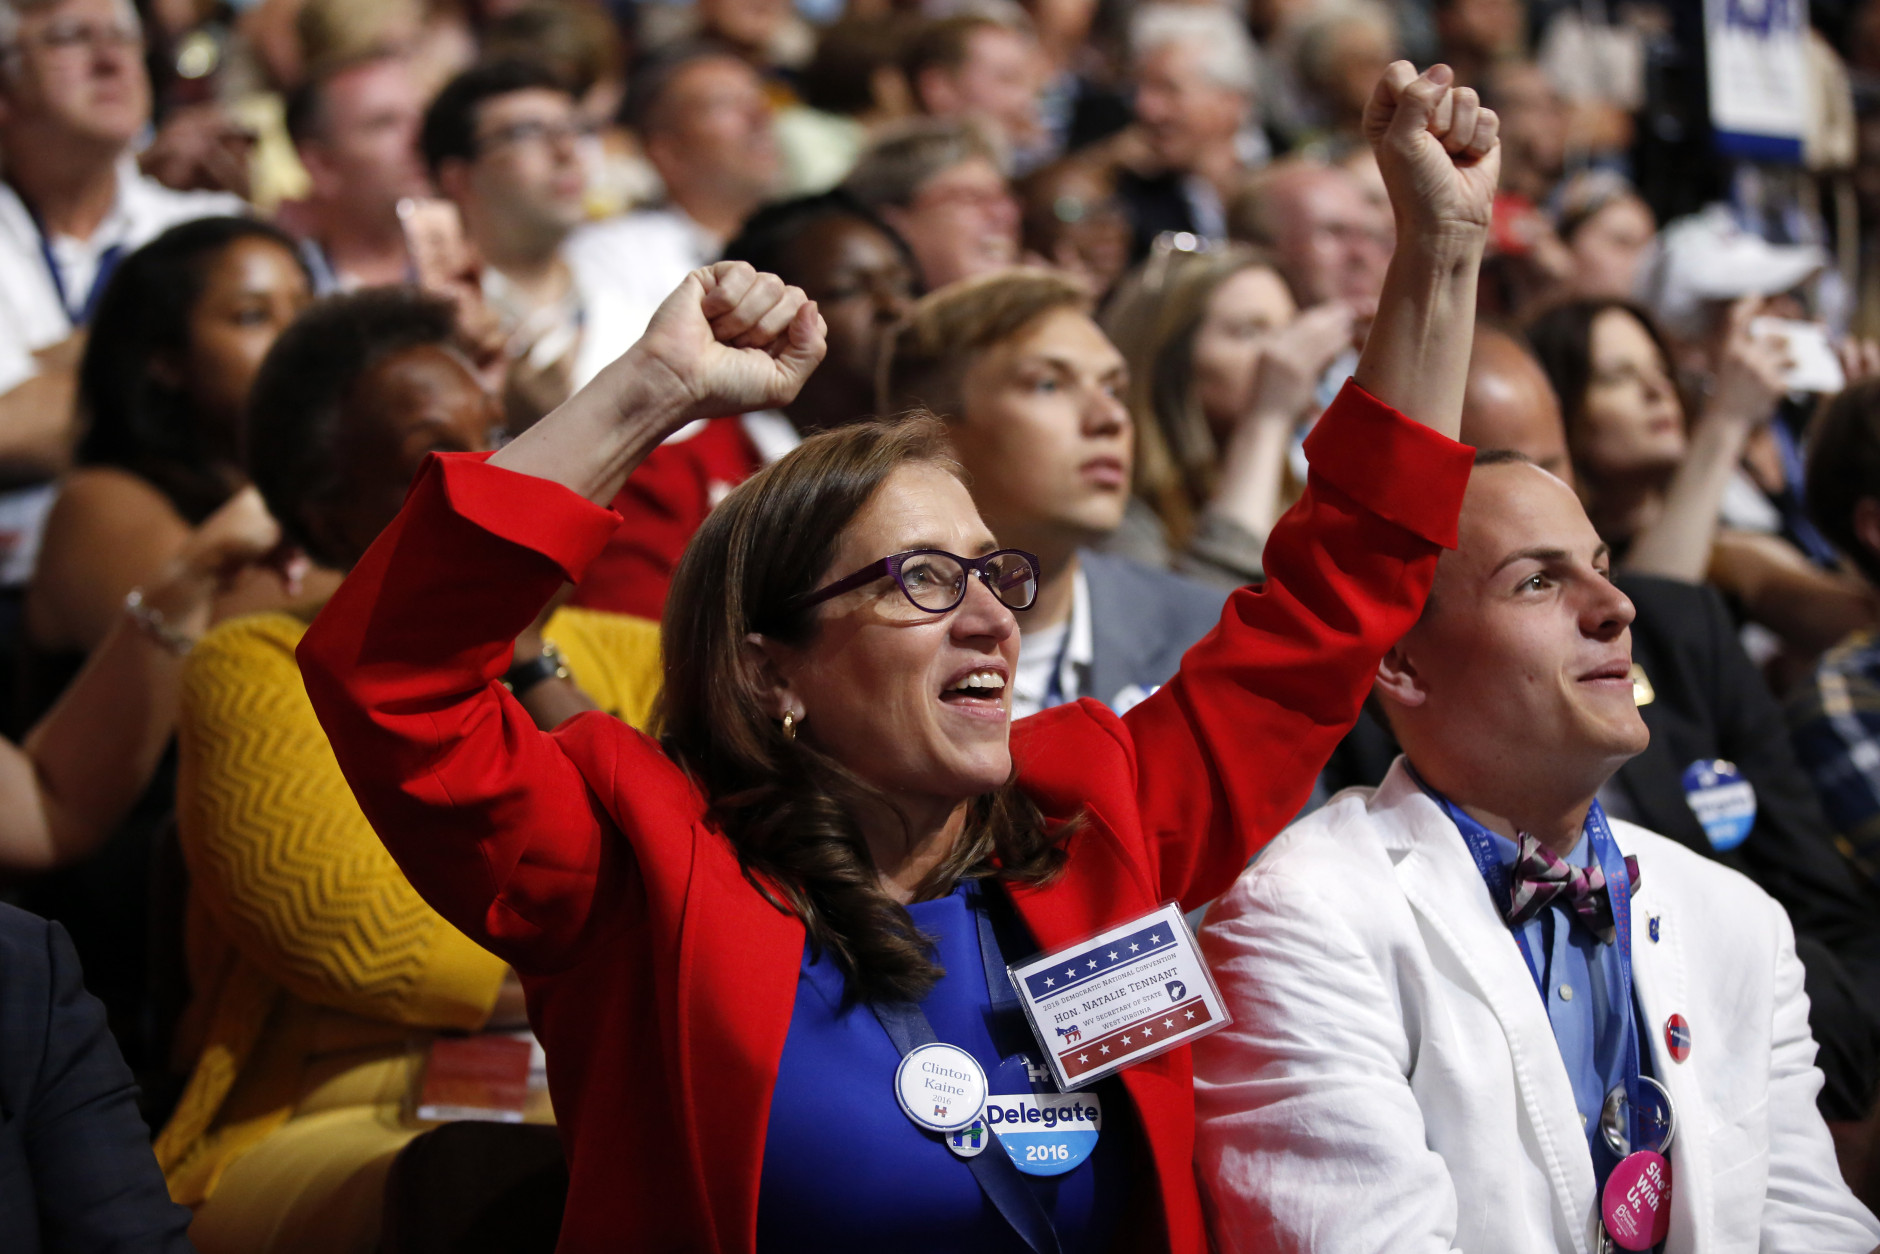 West Virginia delegate Natalie Tennant cheers during the third day session of the Democratic National Convention in Philadelphia, Wednesday, July 27, 2016. (AP Photo/Matt Rourke)